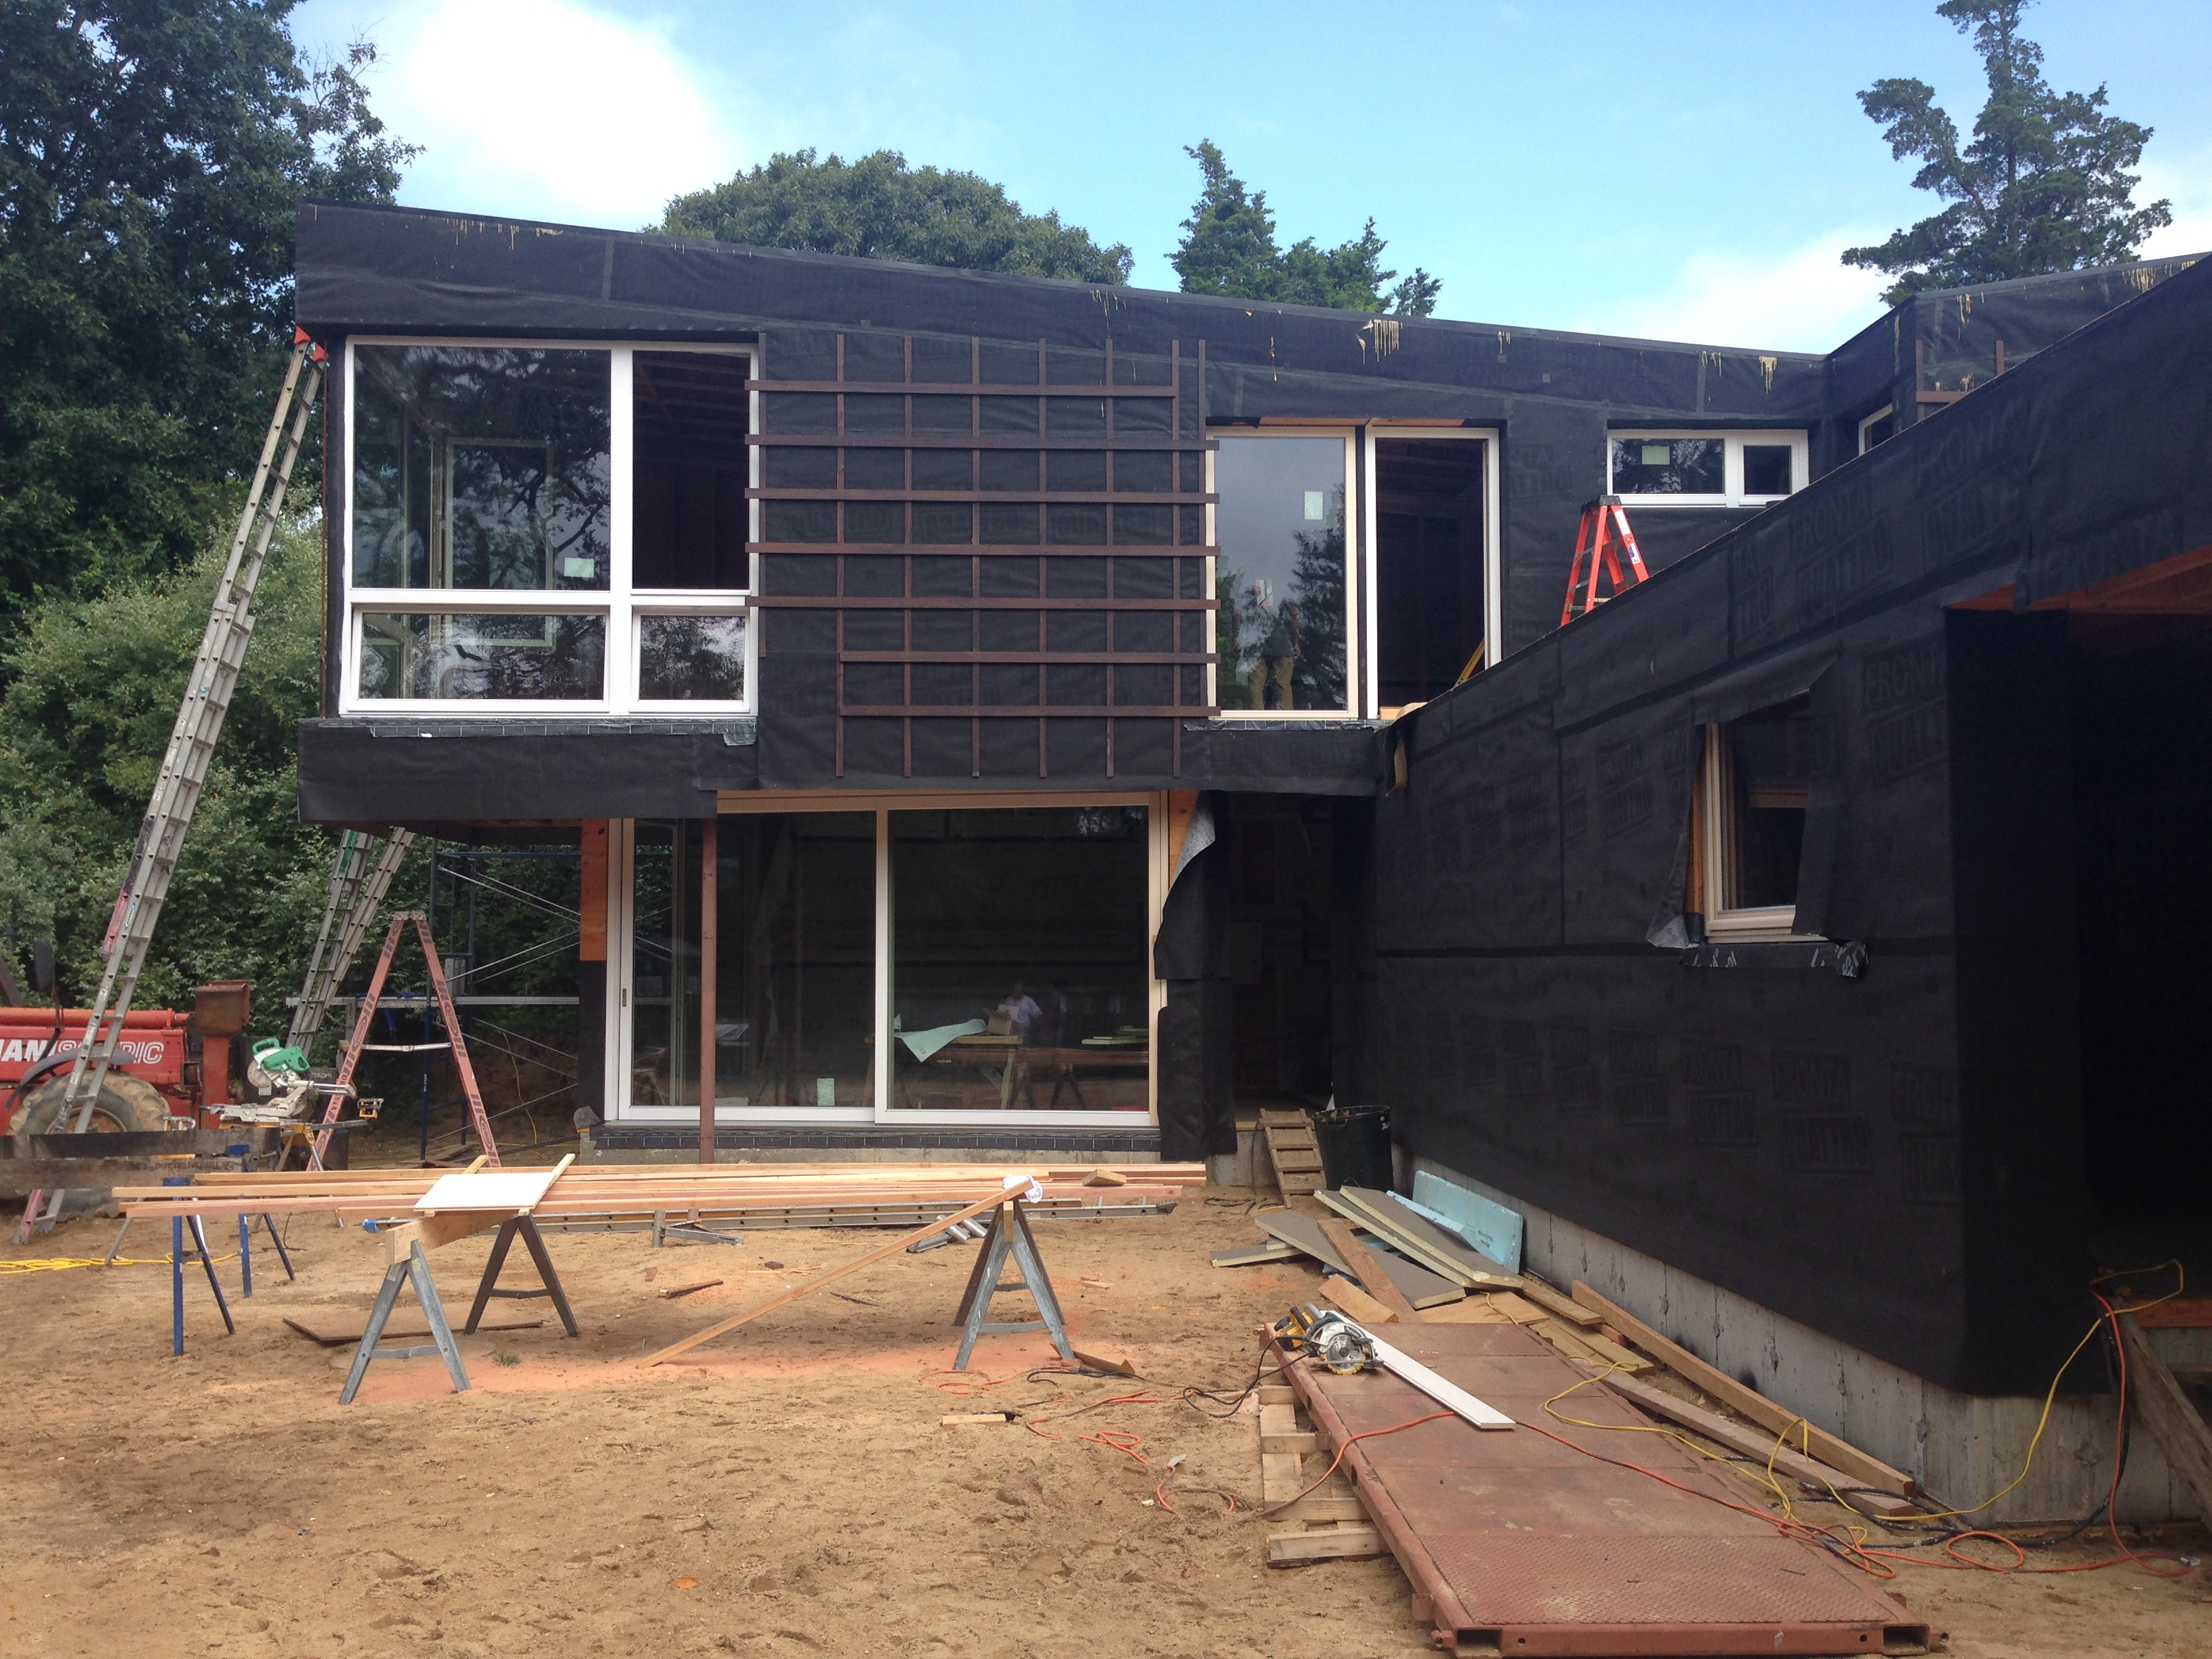 SOLITEX Fronta Quattro taped with TESCON Invis. Credit: Ryall Poerter Sheridan Architects